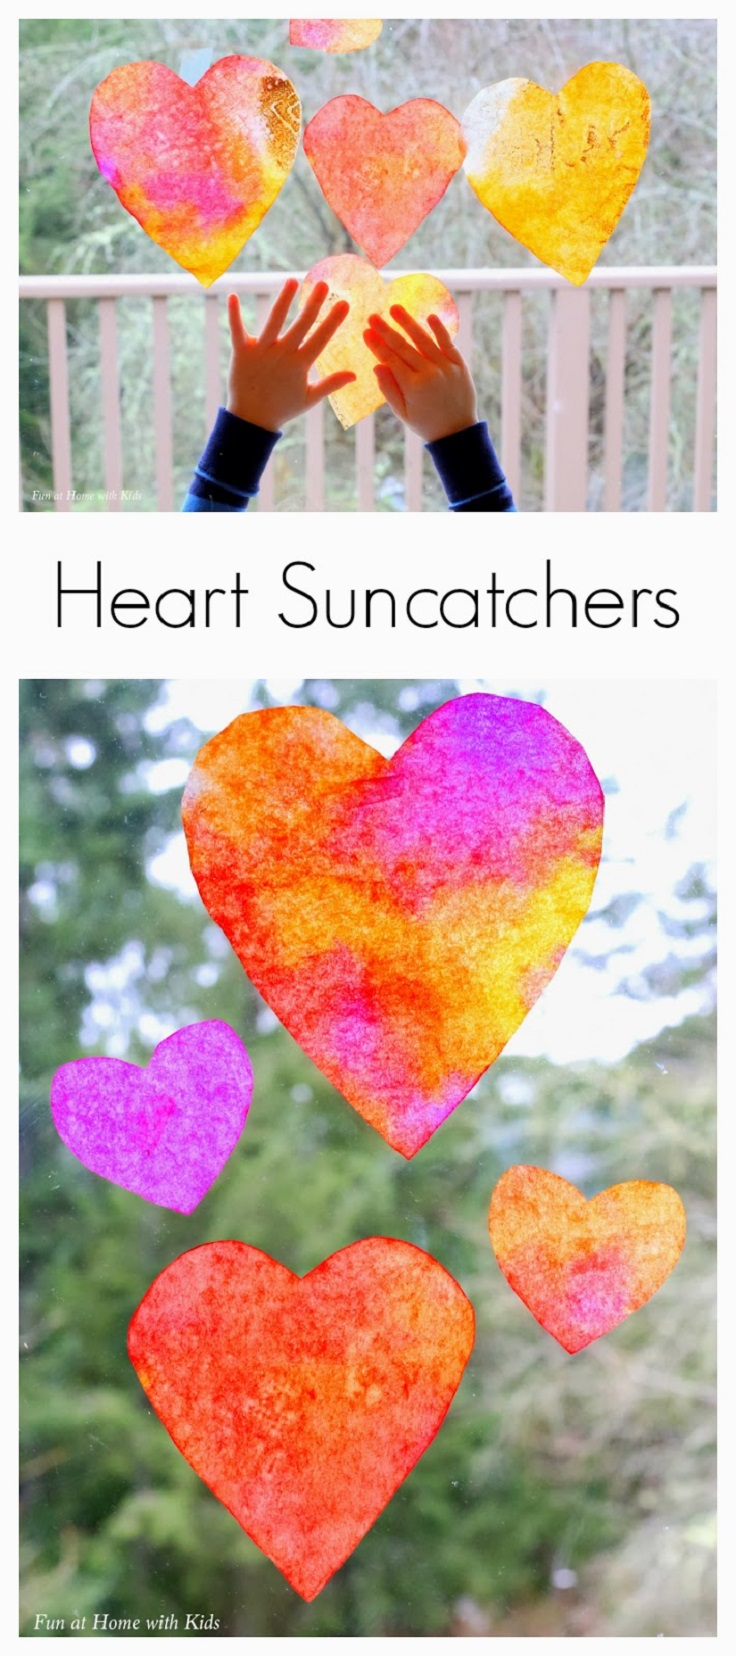 Heart-Suncatcher-Craft-for-Toddlers